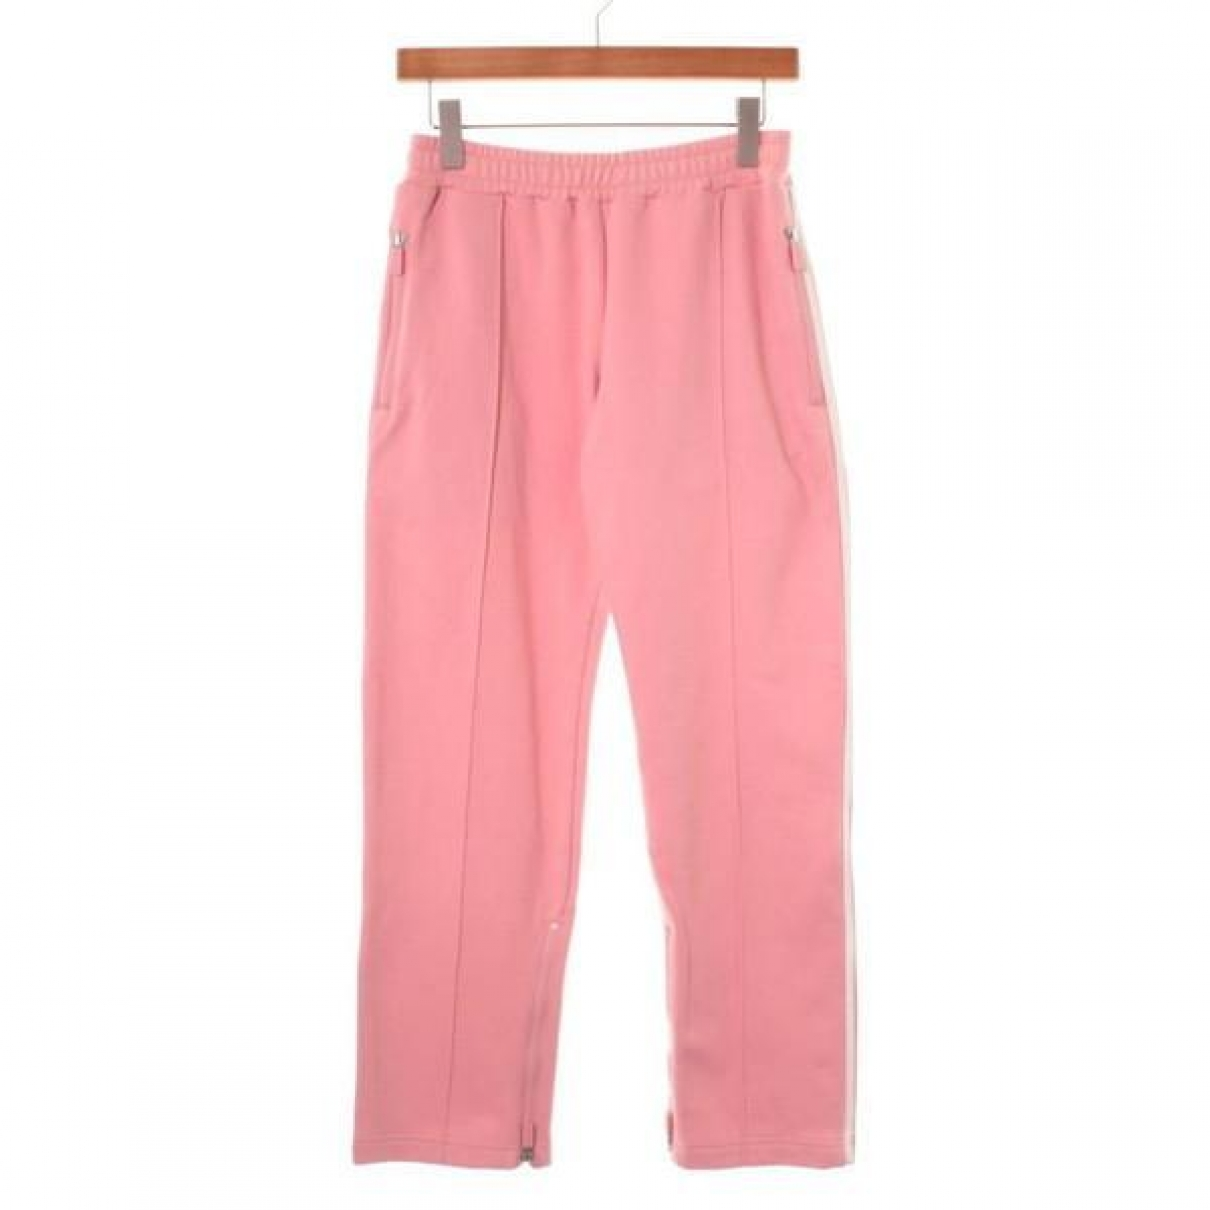 Y-3 \N Pink Cotton Trousers for Women 2 US